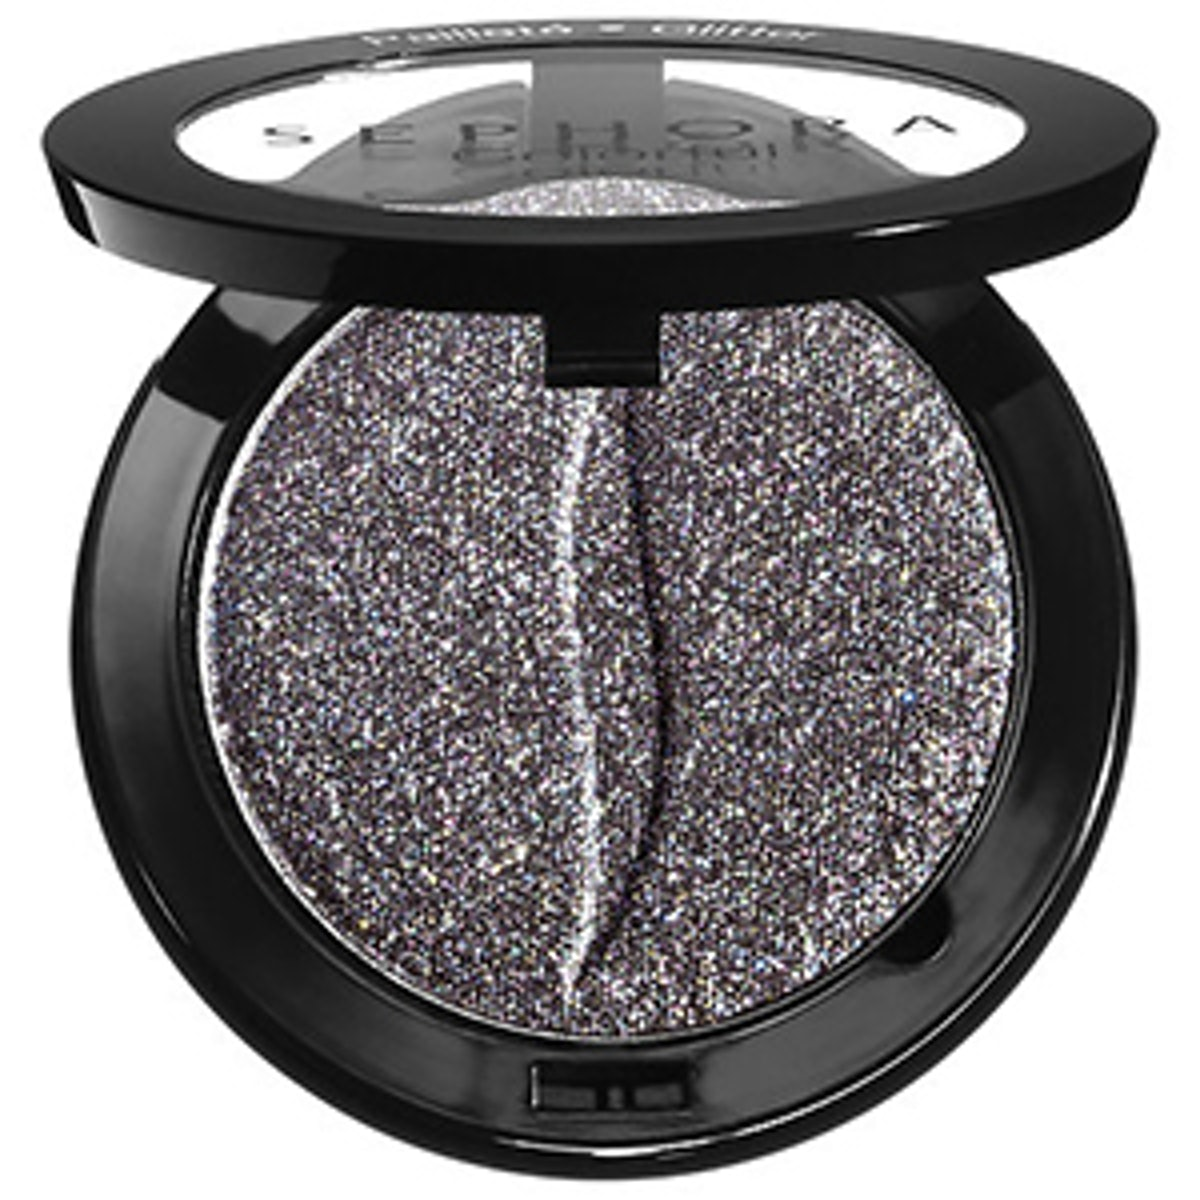 Sephora Collection Colorful Eyeshadow in Midnight Madness